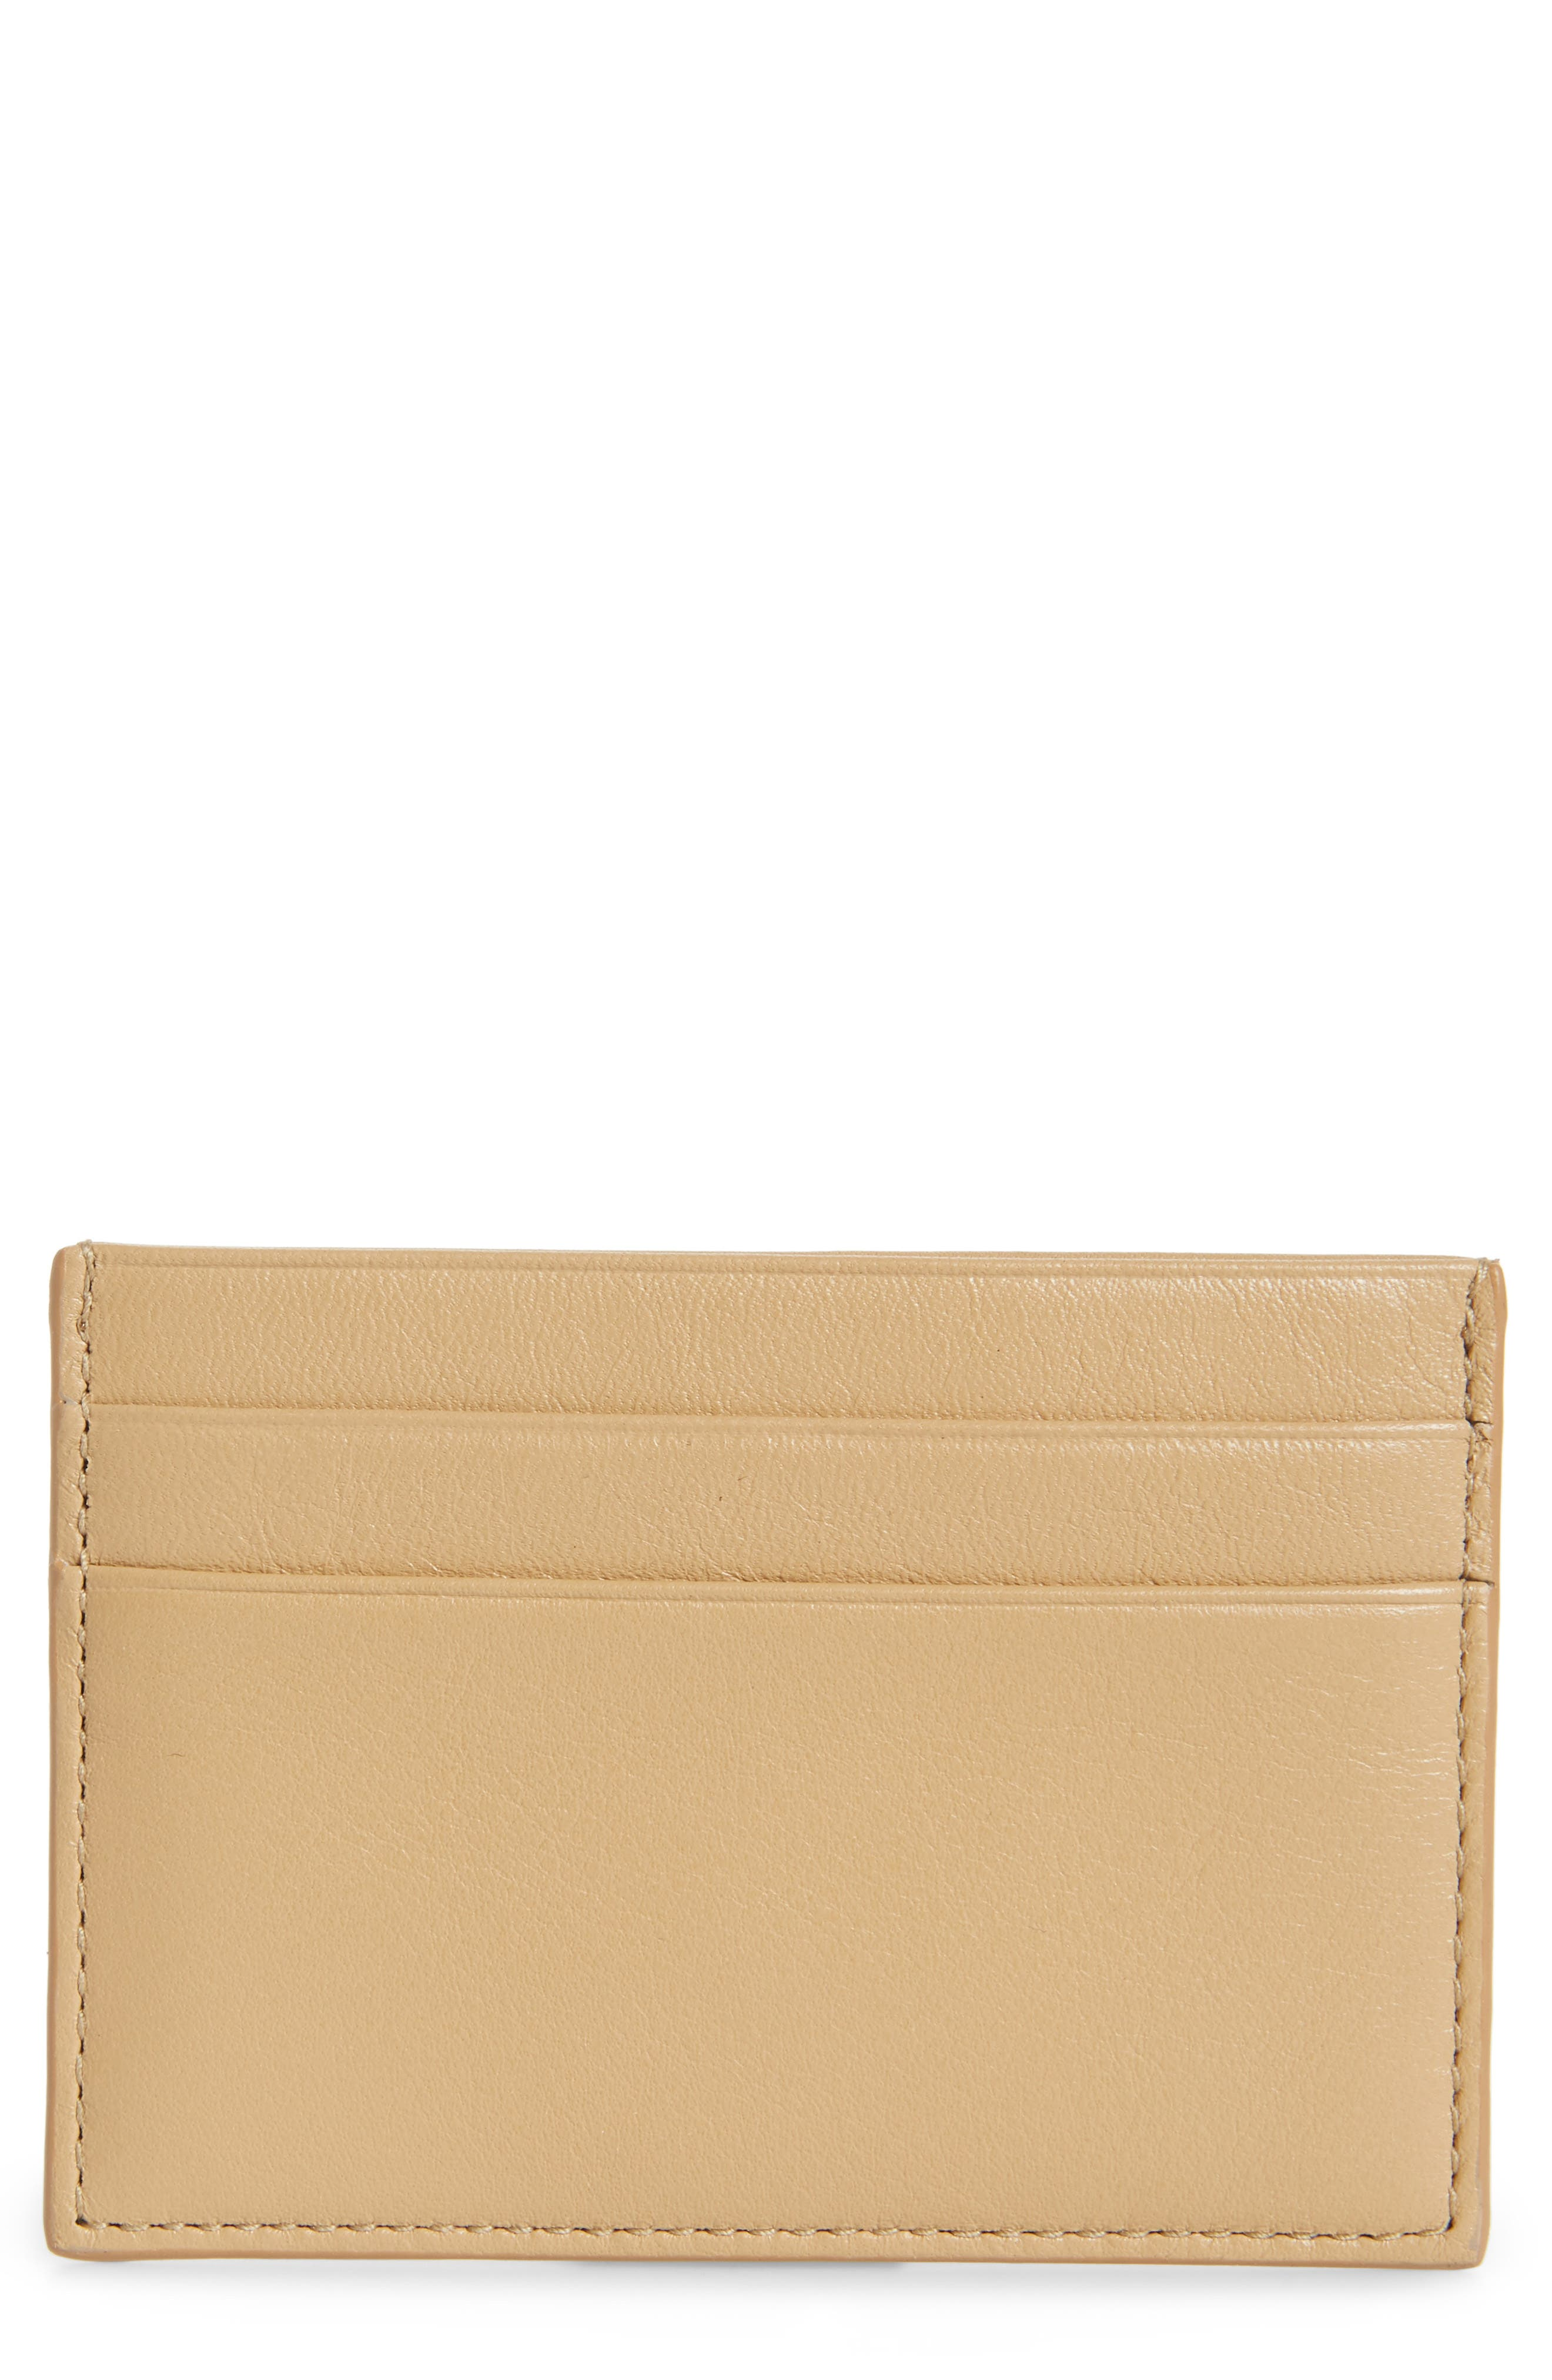 COMMON PROJECTS Nappa Leather Card Case, Main, color, 250